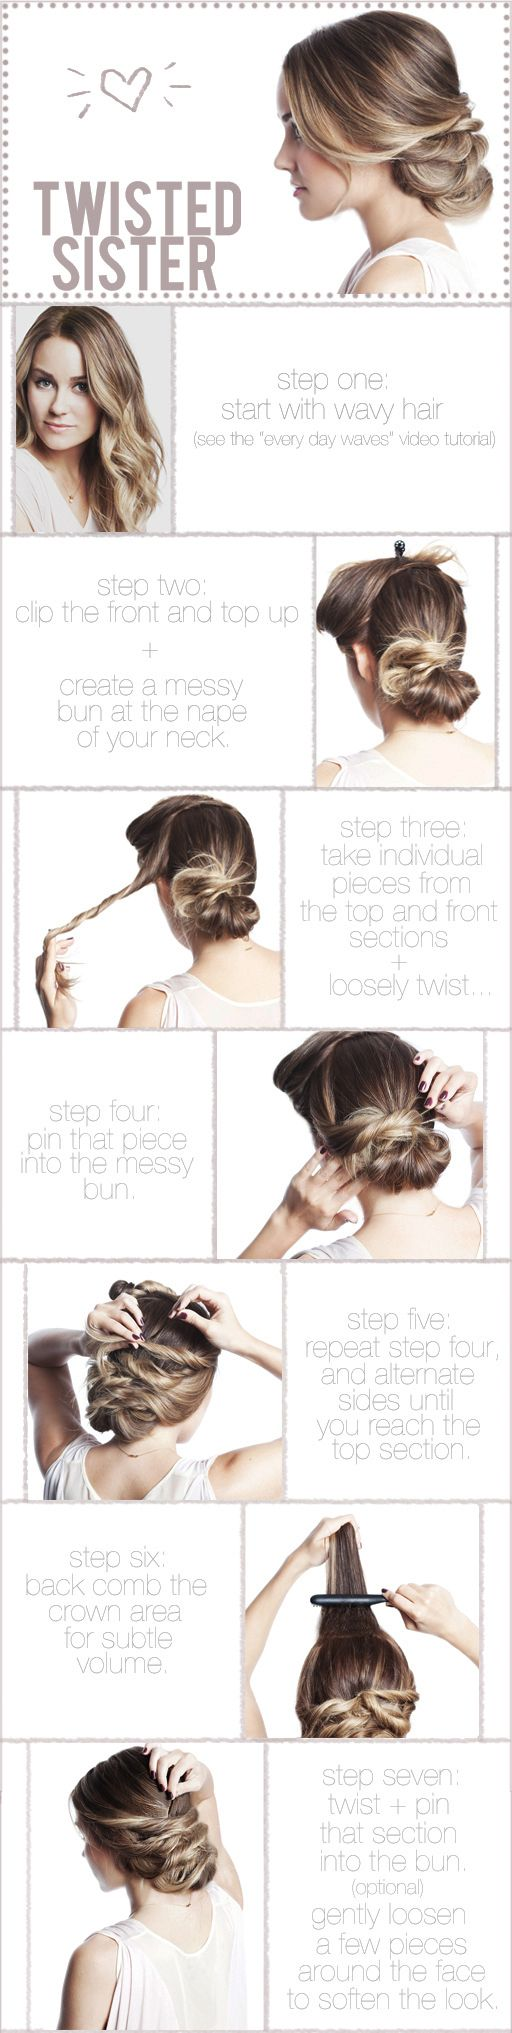 easy hair twist.